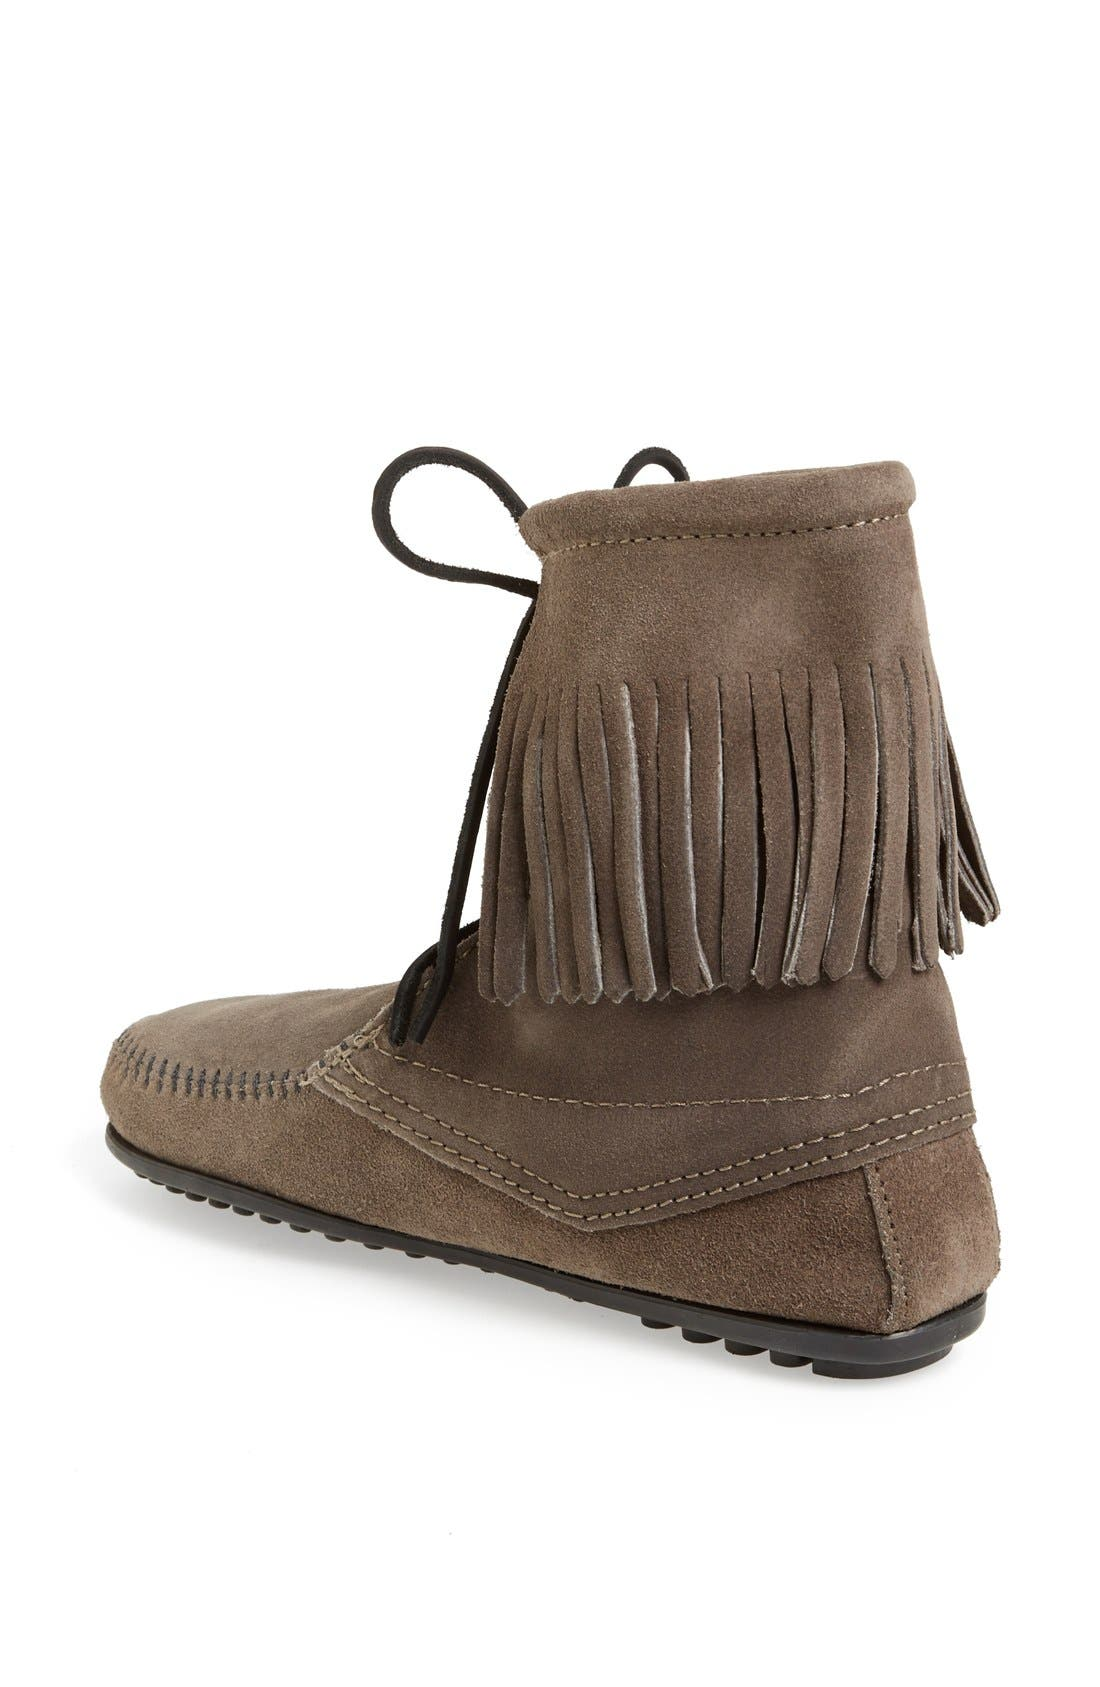 'Tramper' Fringed Suede Ankle Bootie,                             Alternate thumbnail 3, color,                             039